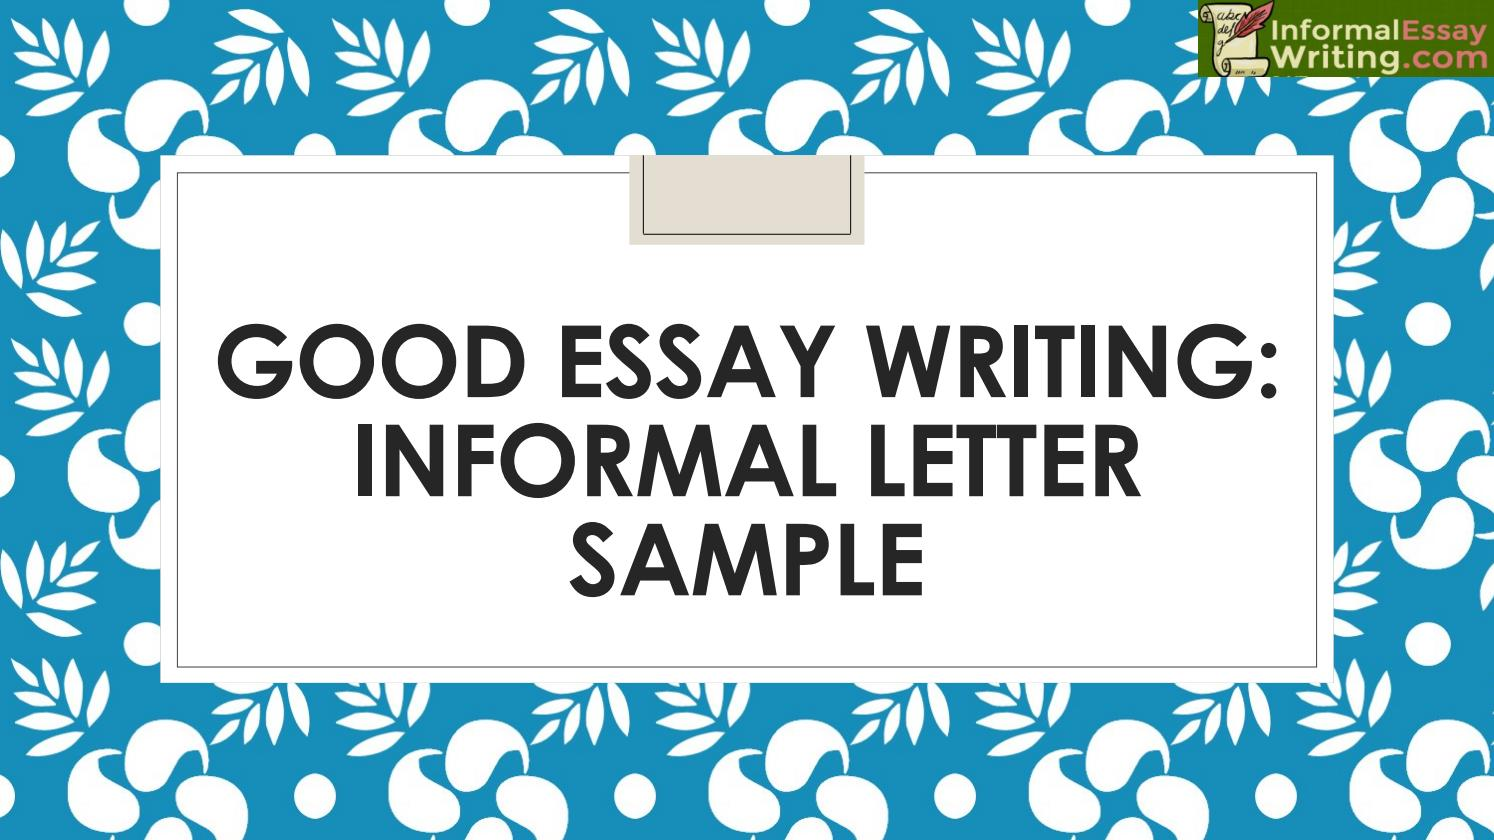 Essays Topics For High School Students Good Essay Writing Informal Letter Sample By Informal Essay Writing  Issuu Term Papers And Essays also Example Of A Thesis Essay Good Essay Writing Informal Letter Sample By Informal Essay Writing  Essay Papers For Sale